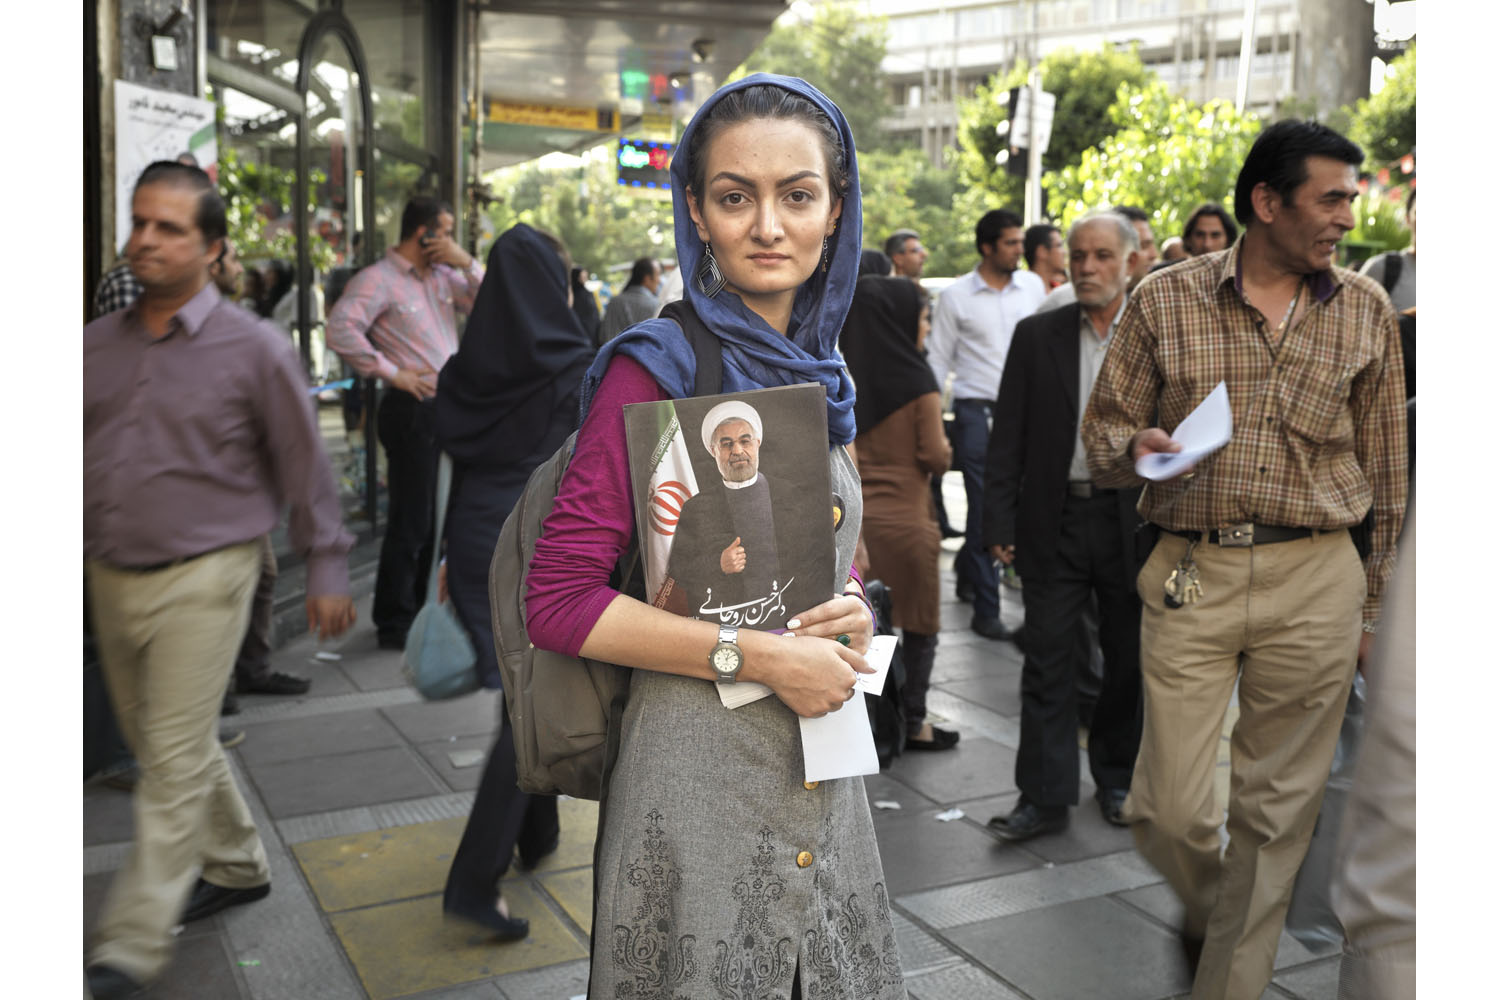 Kian Rezaaei, 21, a supporter of Hassan Rouhani, helps get out the vote days before the presidential election.